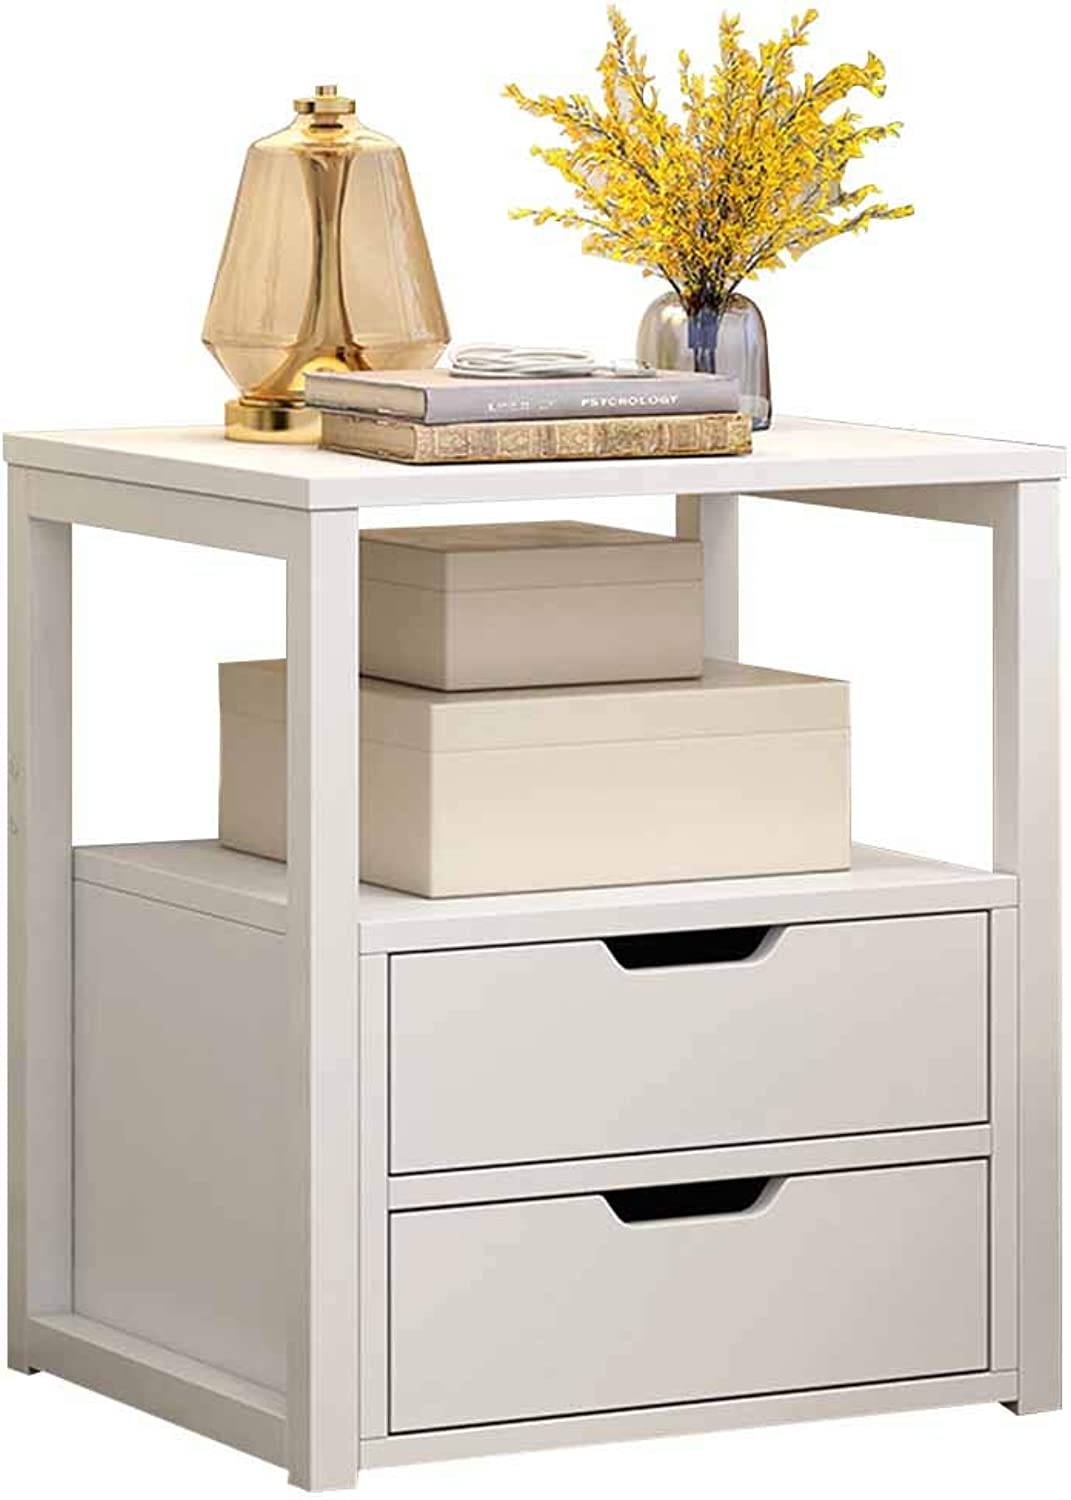 Coffee Table Bedside Table, Invisible Handle, Double Drawer Multi-Functional Storage, Living Room Sofa Side Bedroom Bedside 2 Colours (color   White)